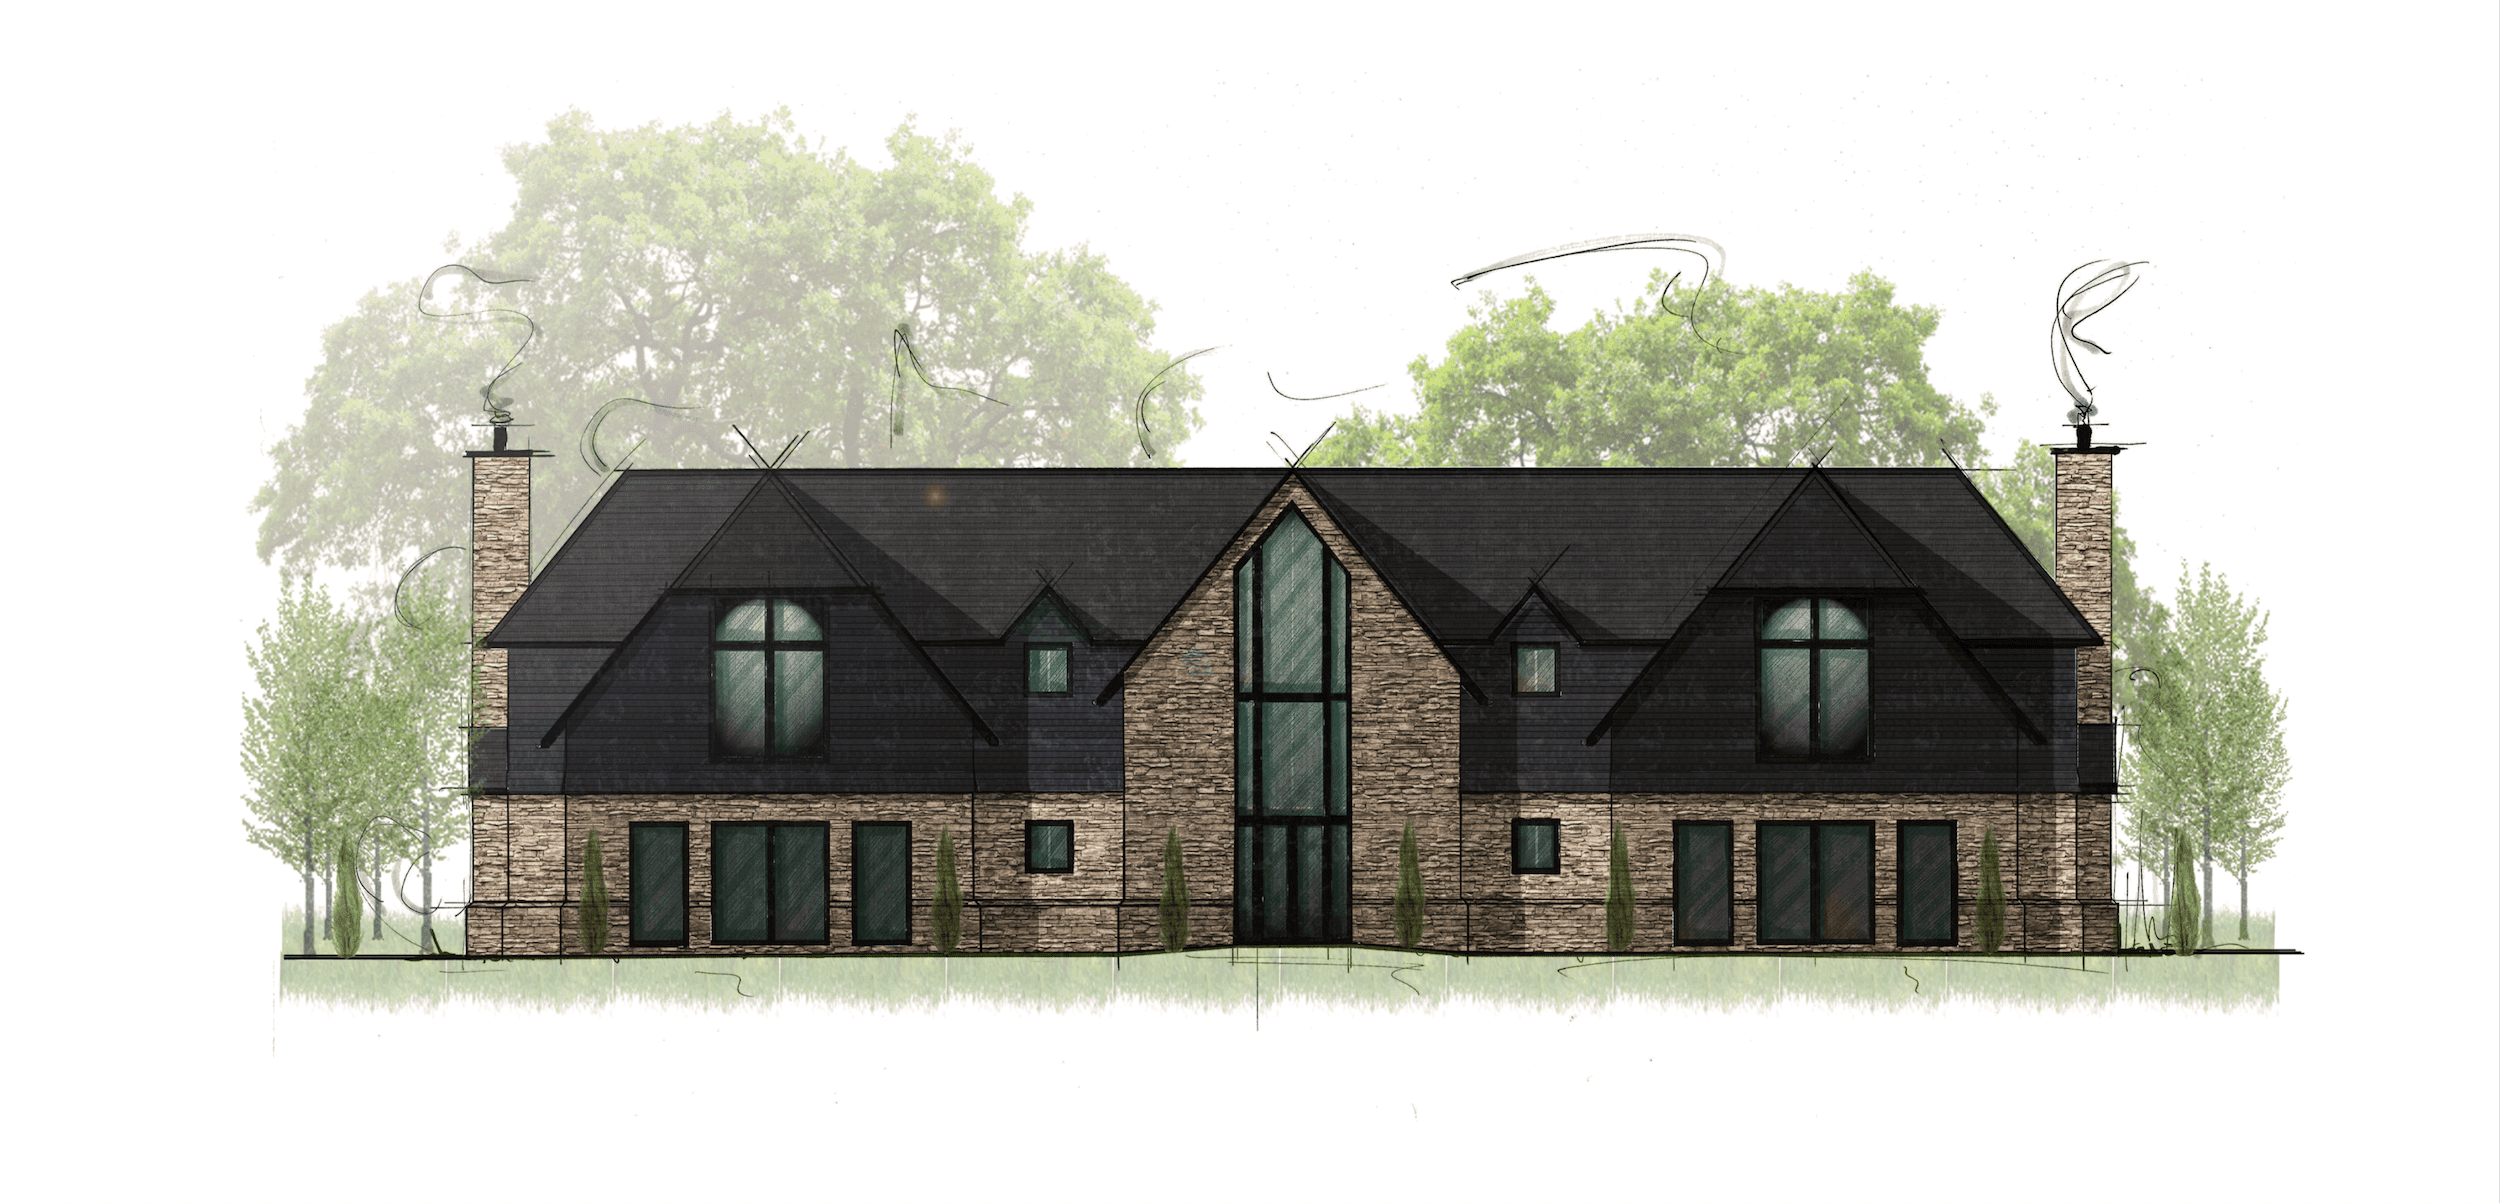 An artists impression of a new build home